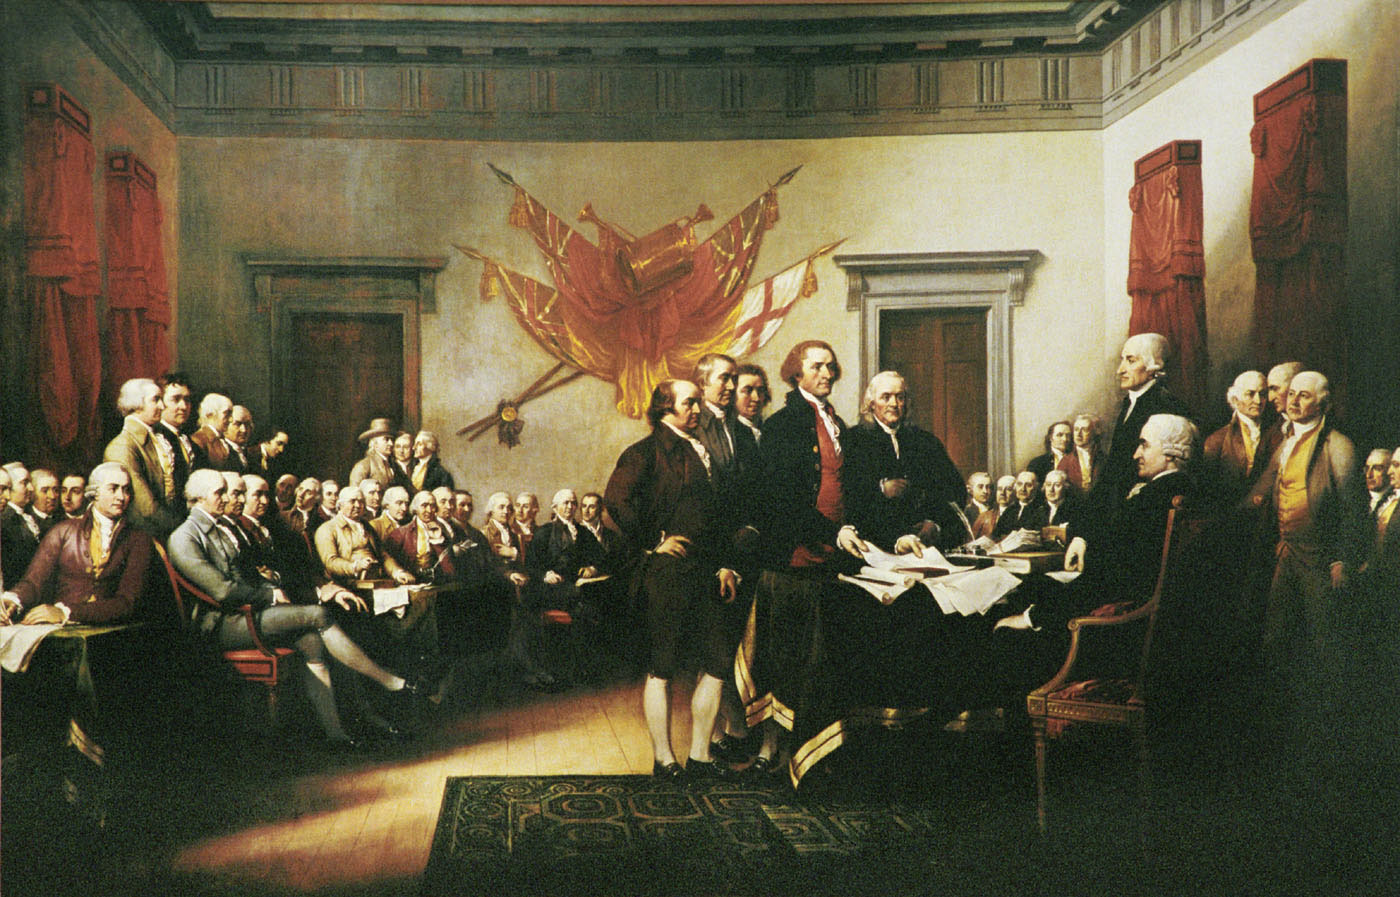 """thomas paine essay common sense urged the colonists to fight for their indepence Paine used the article to call for revolution and suggested that the colonists had a moral duty to the rest of the world to secure human rights (thomas paine's """"common sense,"""" 2010) """"common sense"""" was the first publication to push the idea of a break with the country of britain."""